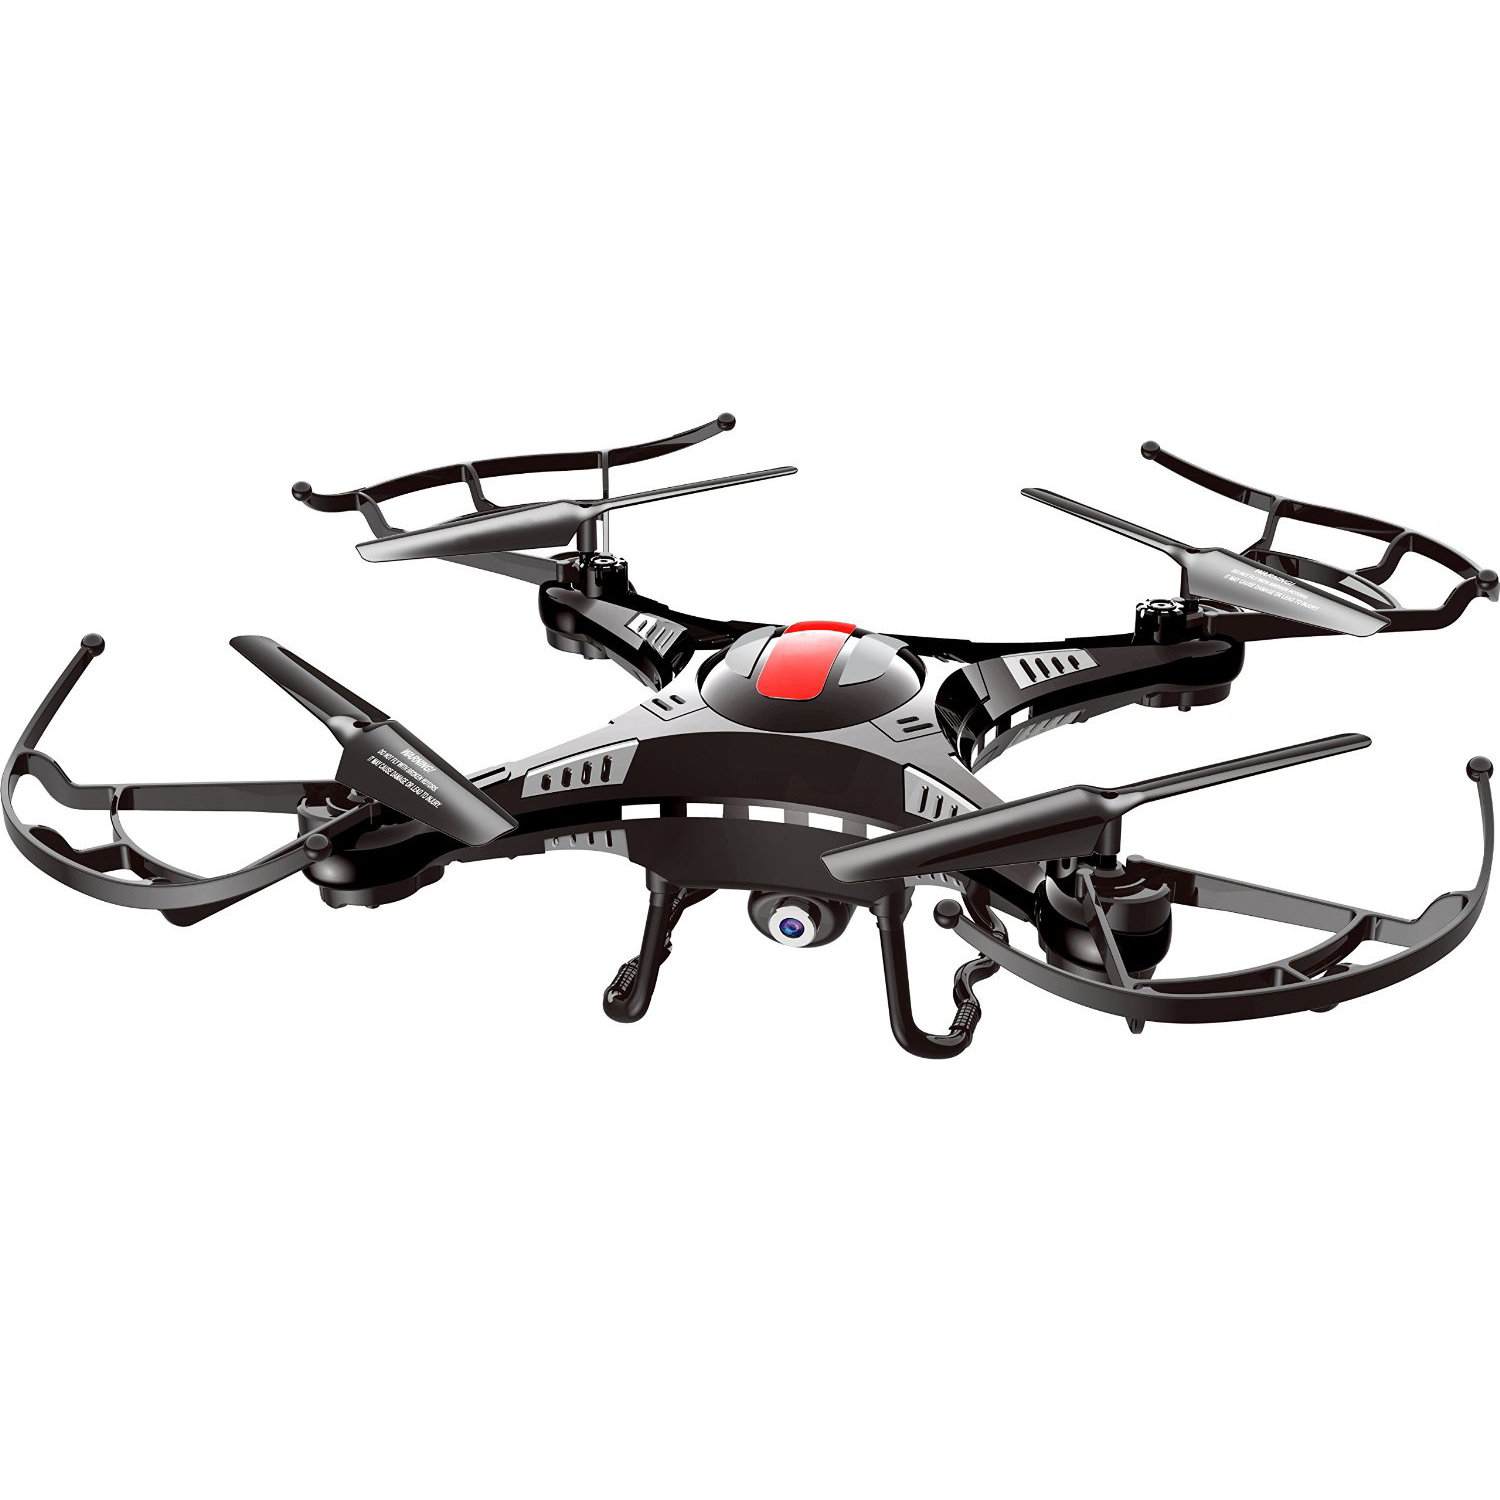 RC Quadcopter 2.4GHz 6-Axis Radio Control Flight Drone Video/Photo Camera